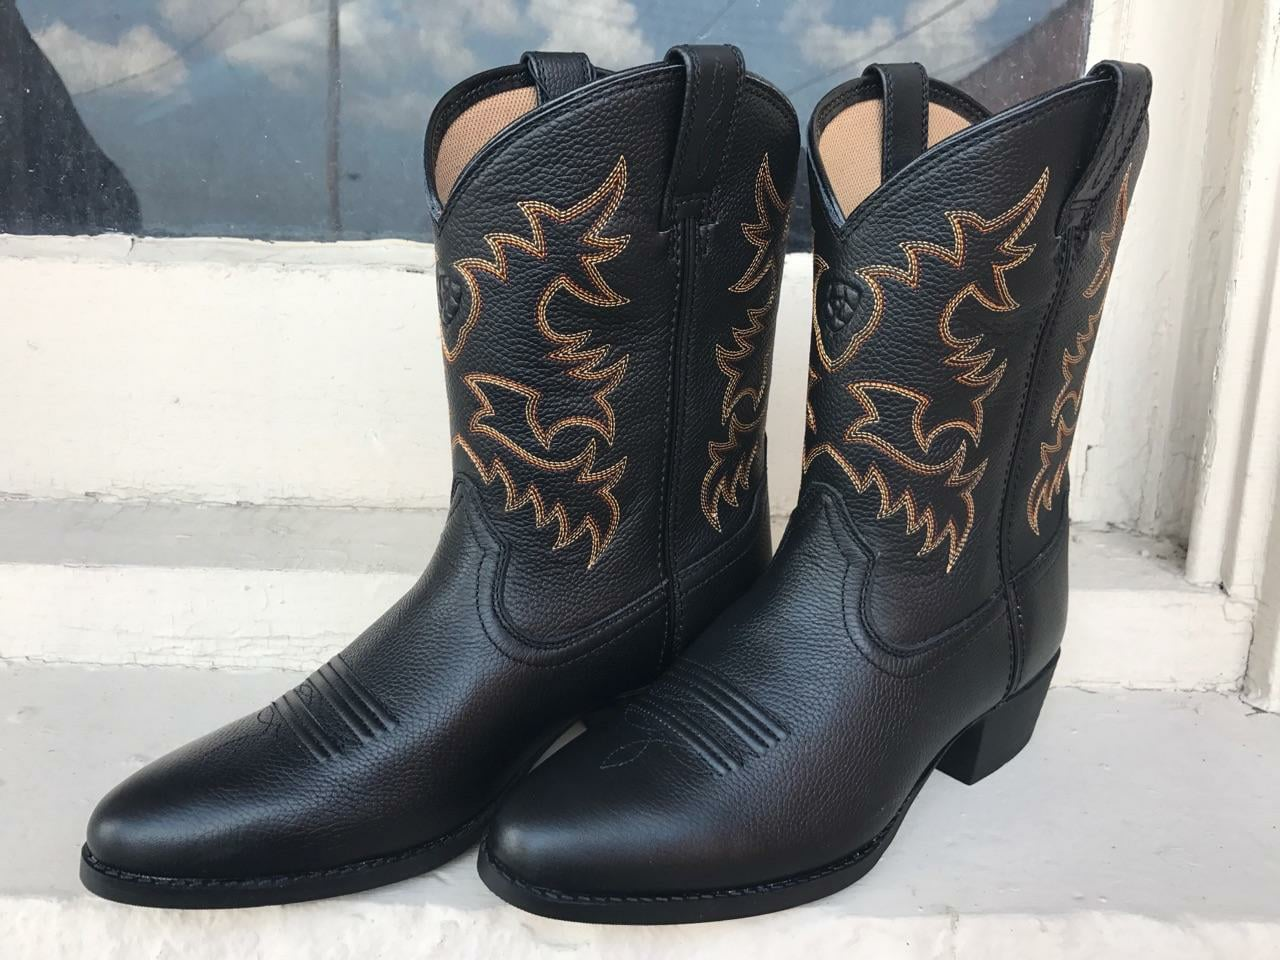 The Boot Life Is A Retail Located In Carrousel District Where Urban Meets Manufacturing Has Broad Offering Of Boots